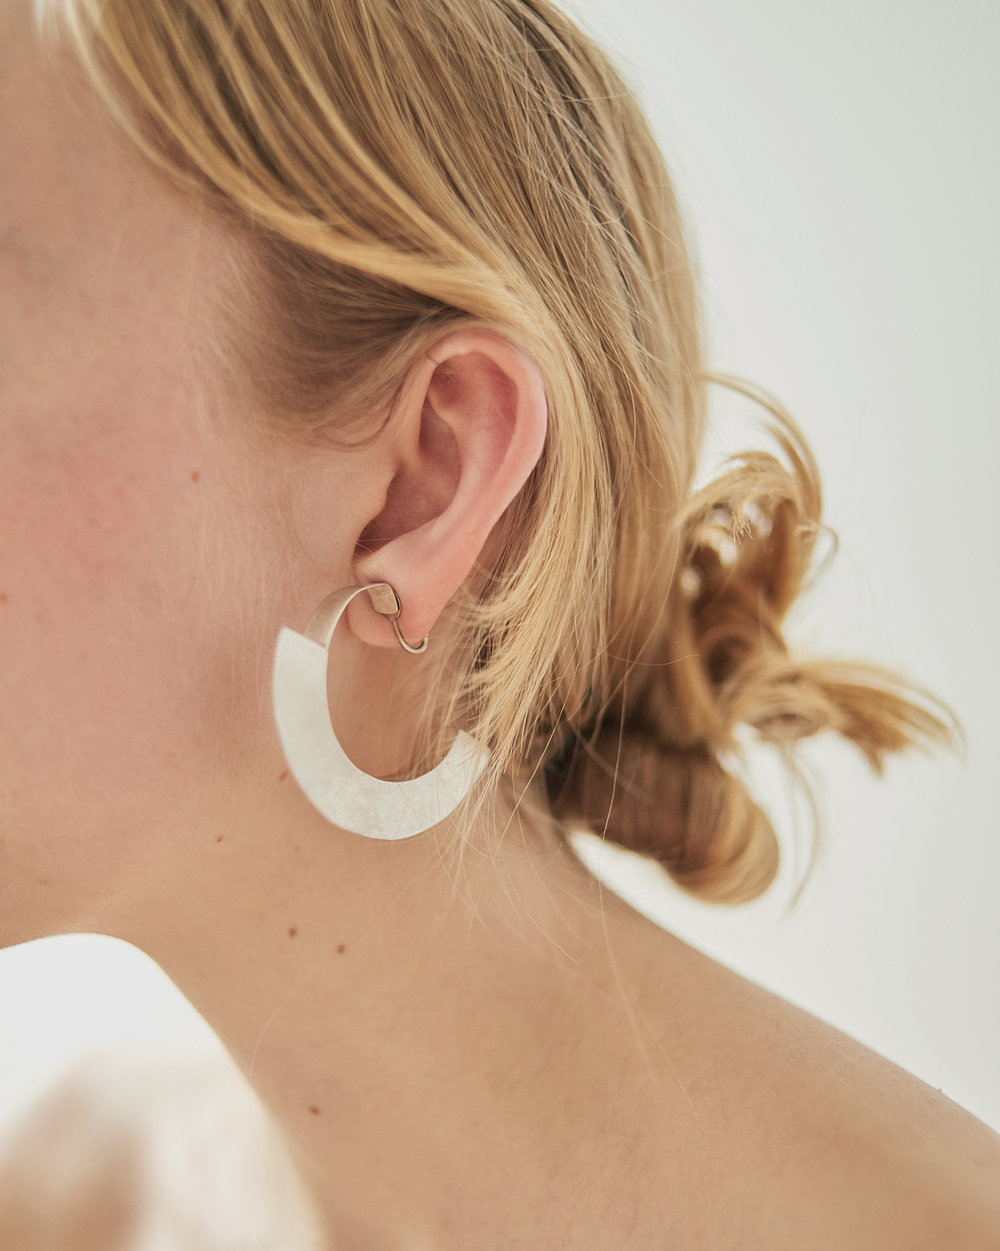 Arc Object's Minimalist and Delicate Handcrafted Creations – Fubiz Media Design